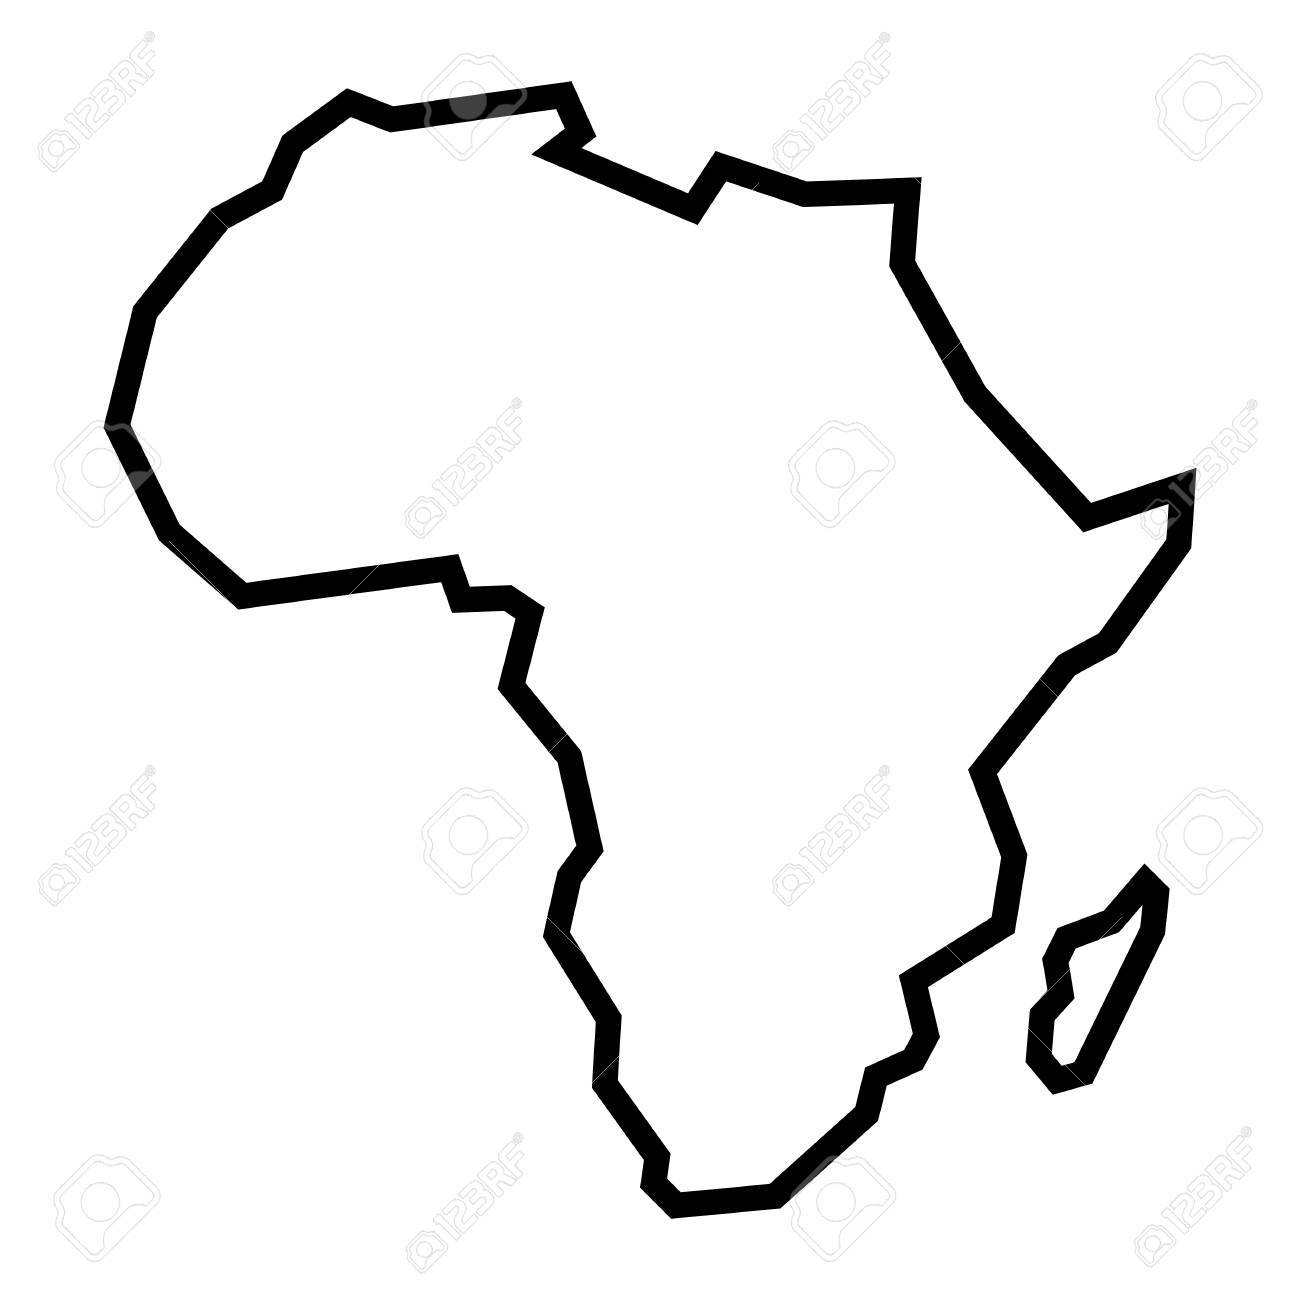 Detailed Map of Africa Continent - 66436196